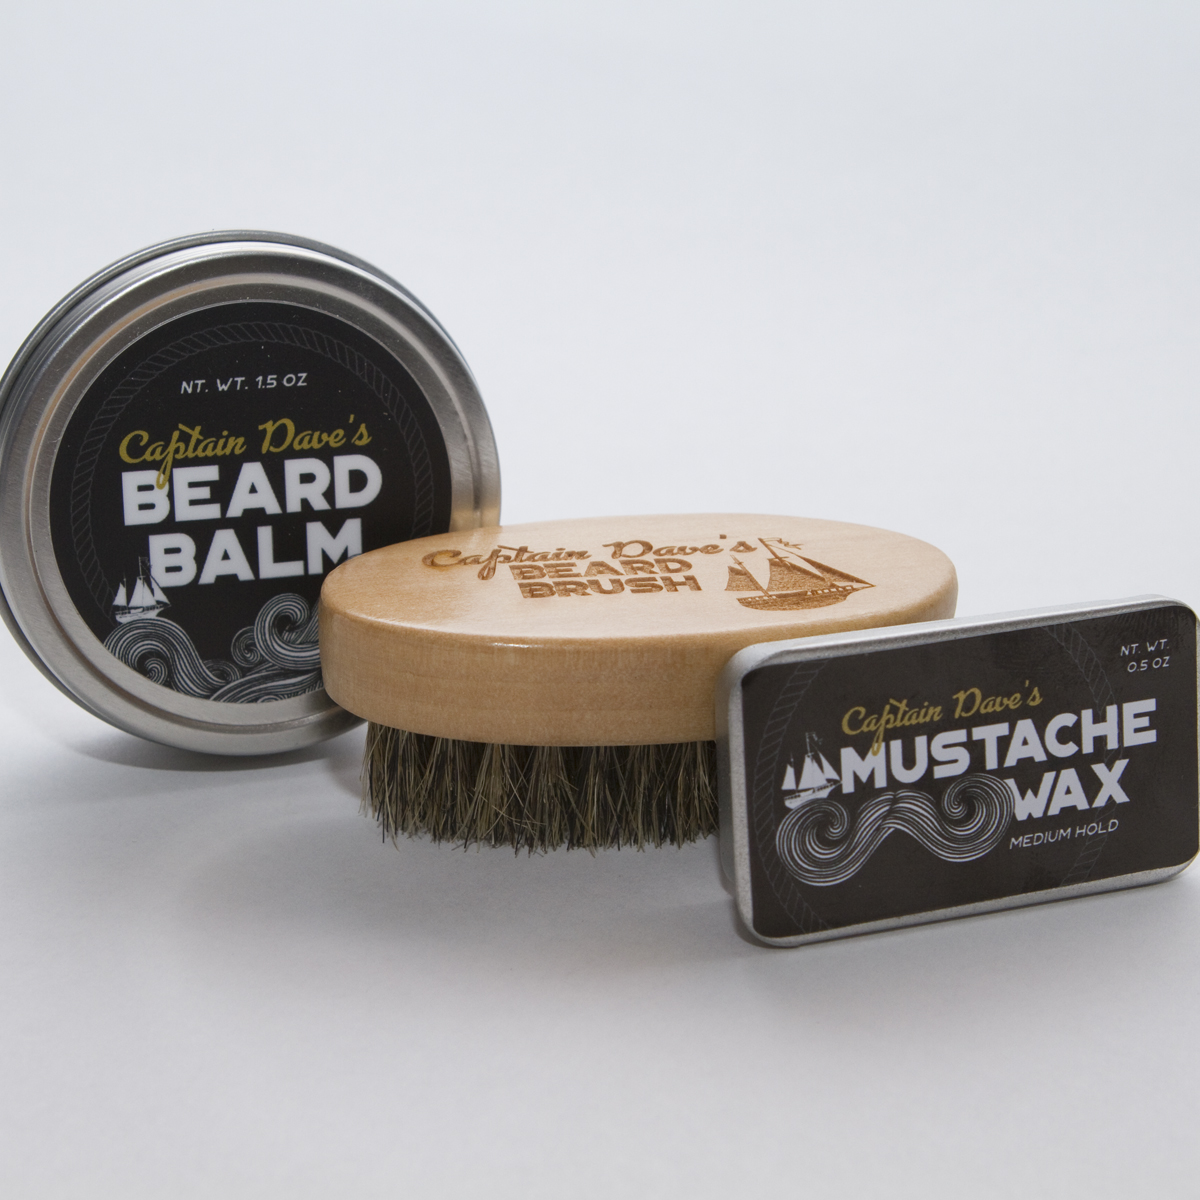 Combo Deals - You can bundle any combination of Captain Dave's Beard Balm, Beard Brush, and Mustache Wax to save money!